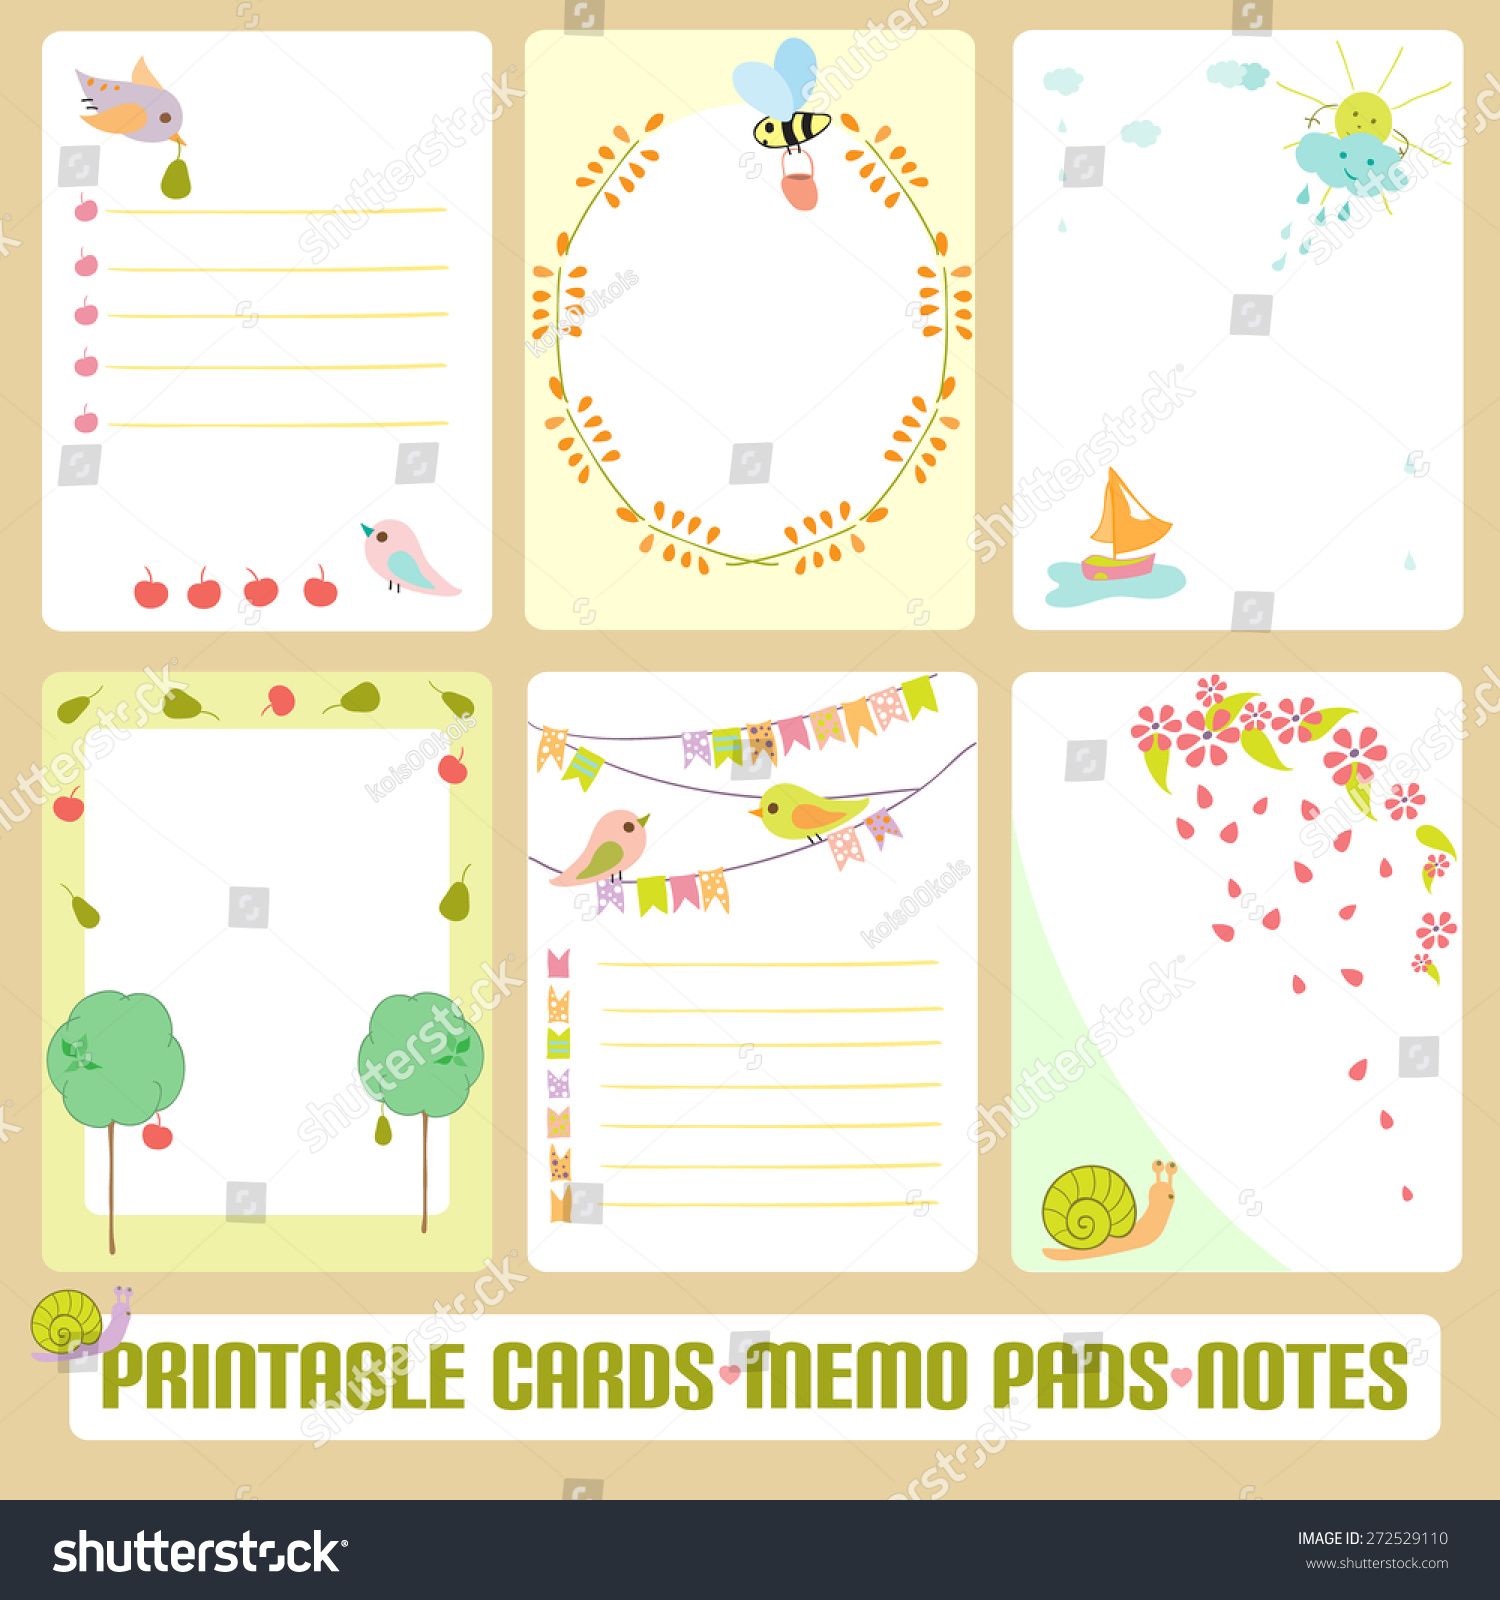 Free notepads templates design your notepads from jukebox.